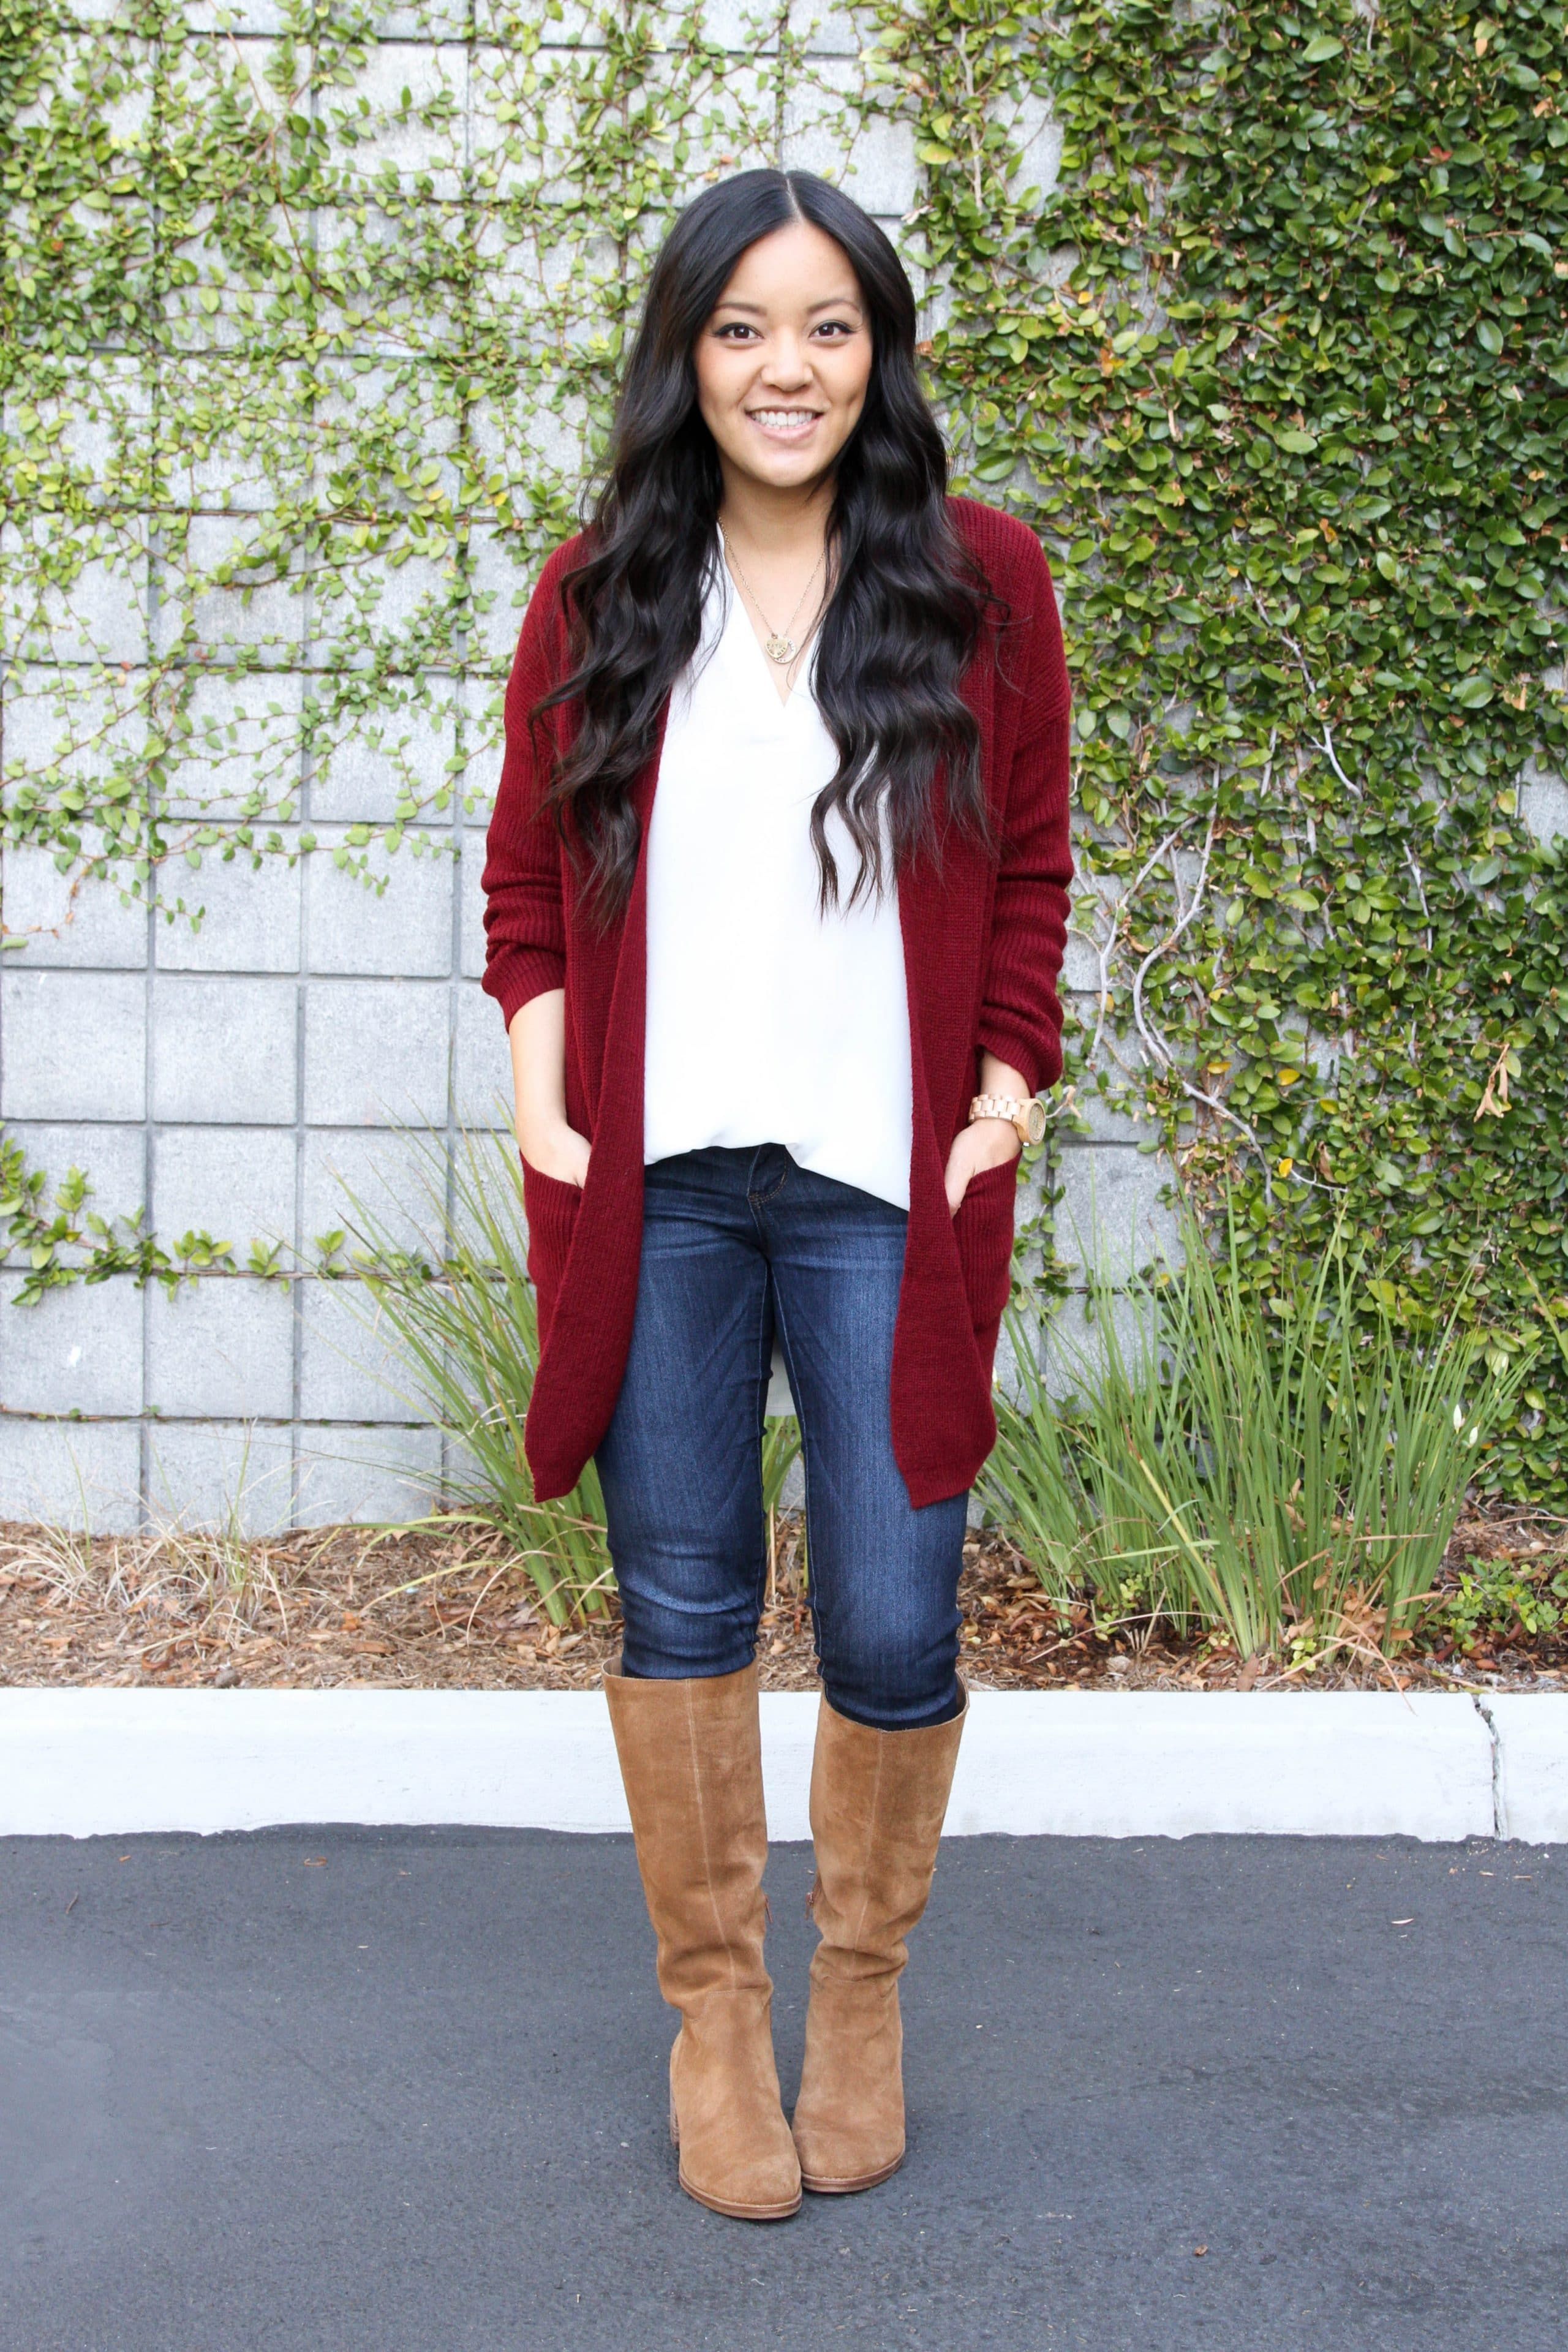 51b537bfc7 Maroon cardigan + white tunic + skinnies + riding boots ...